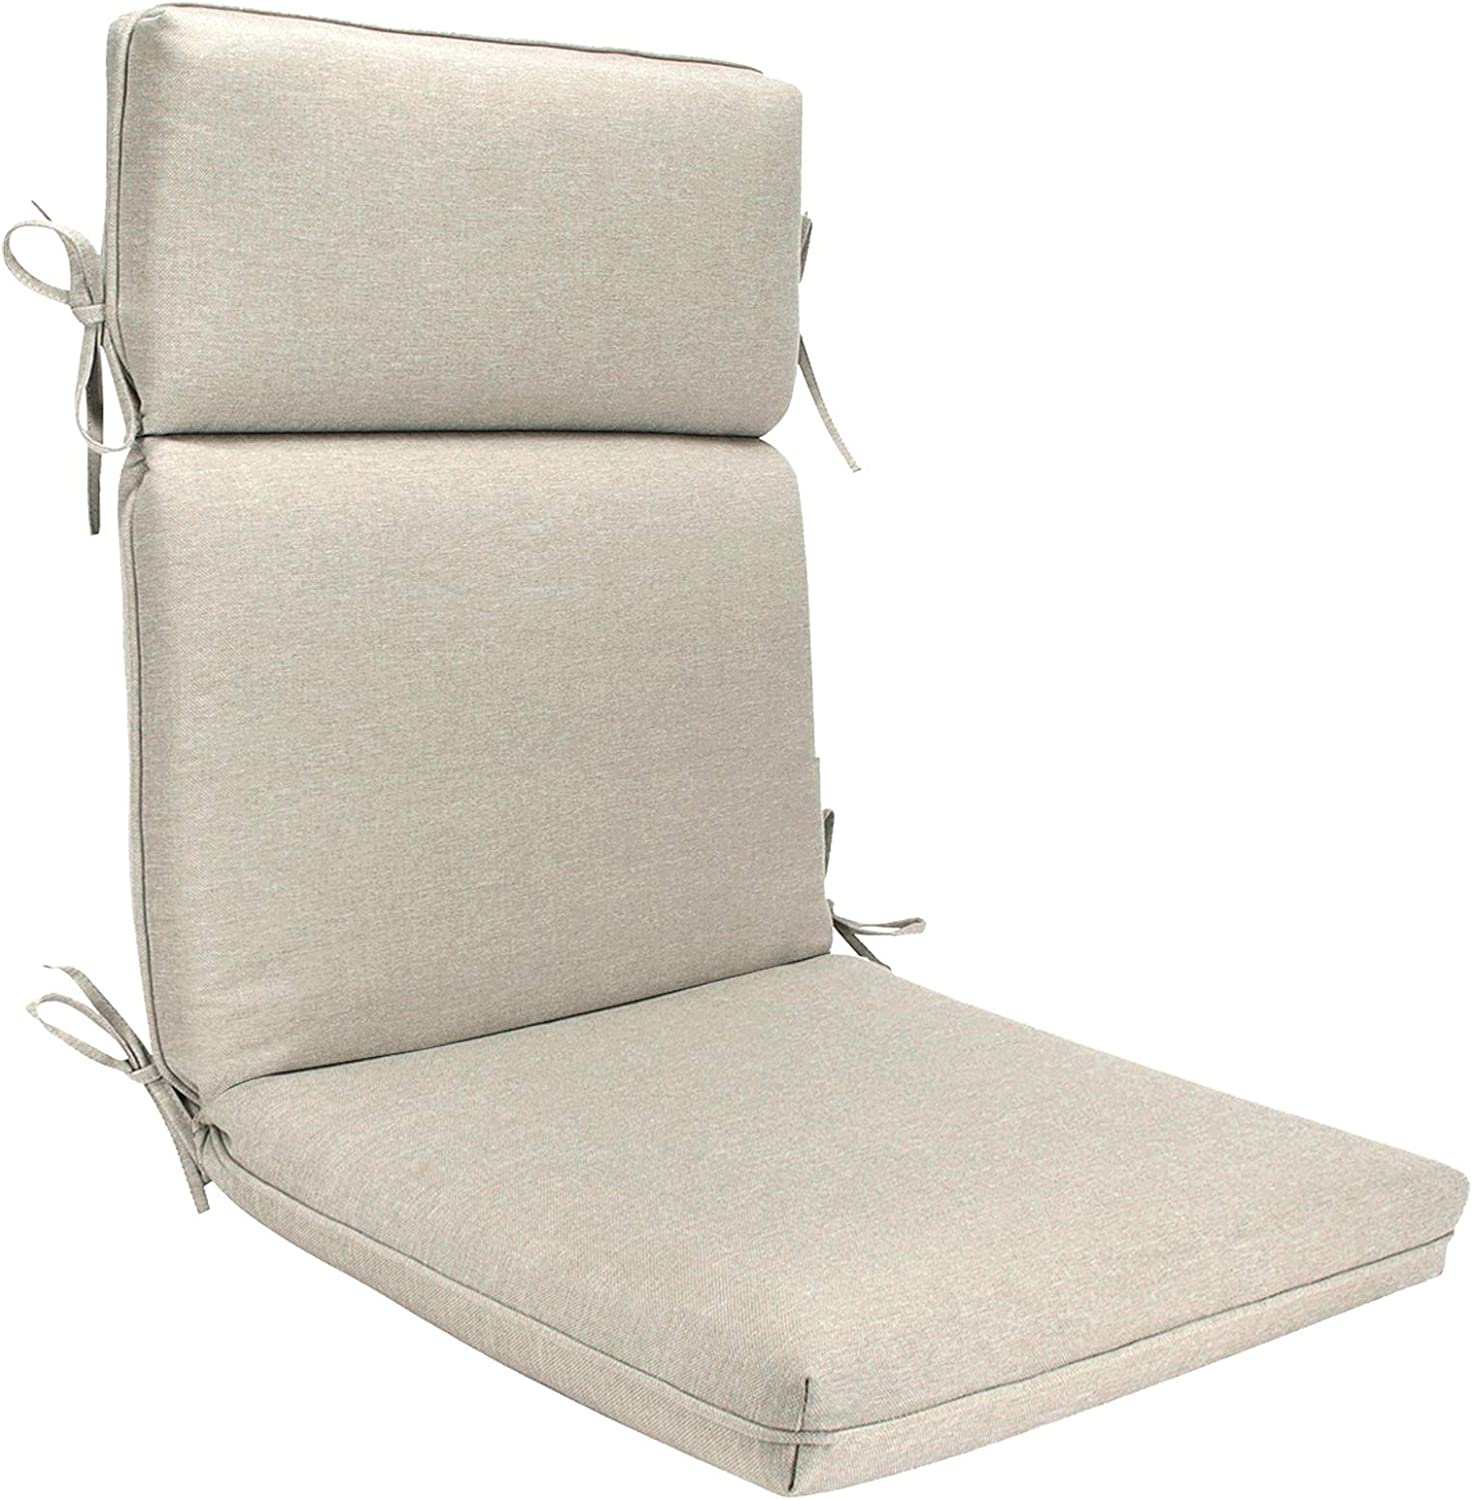 BOSSIMA Outdoor Indoor High Back Chair Cushions Comfort Replacement Patio Seating Cushions Beige